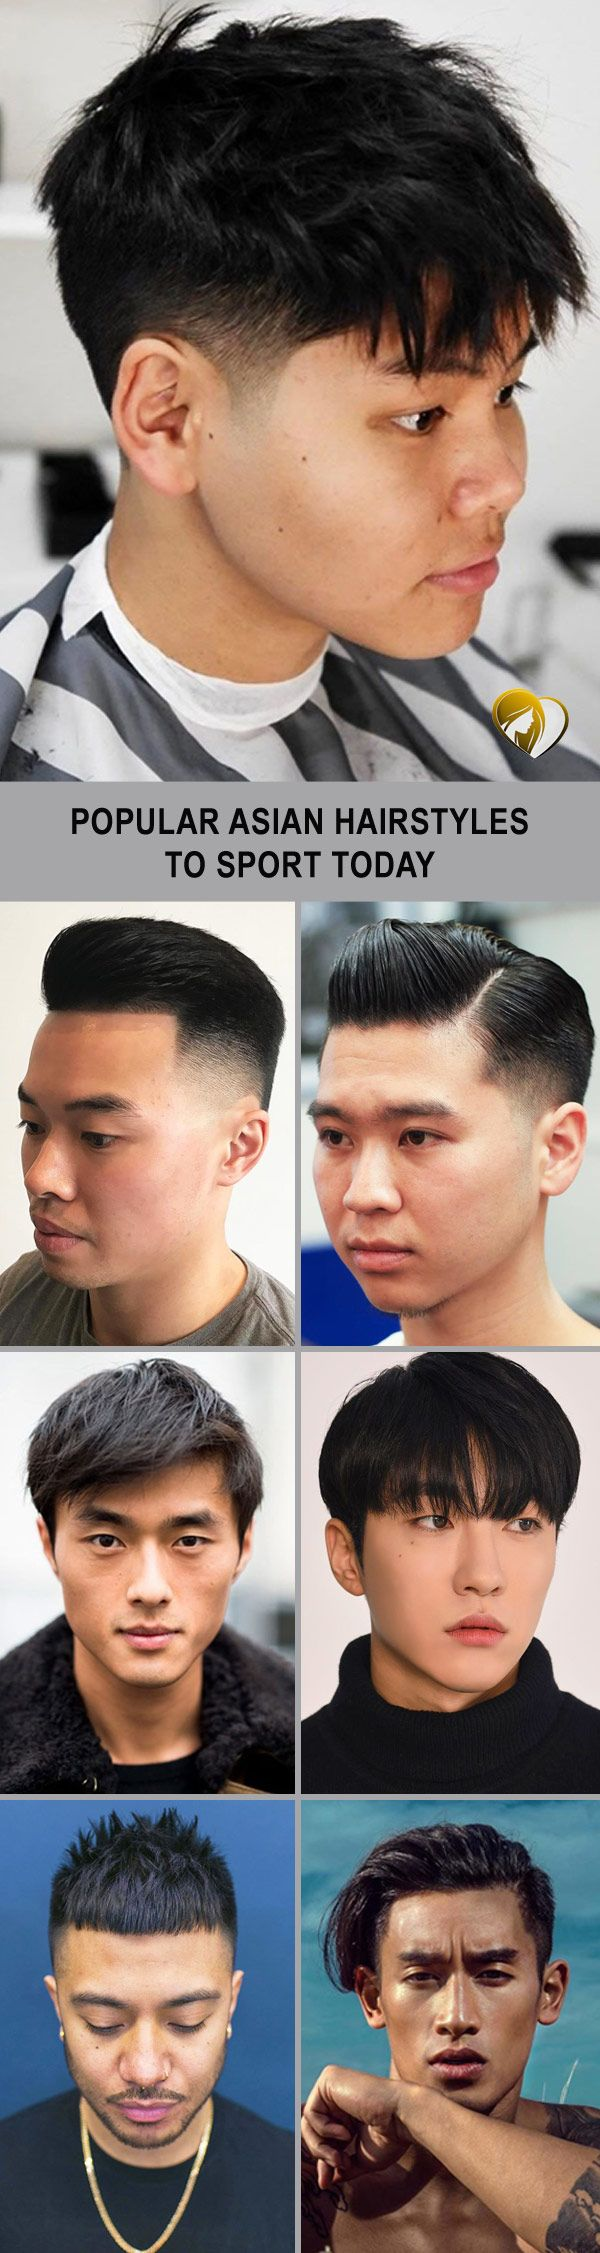 Top 35 Popular Asian Hairstyles Men Love To Sport Today